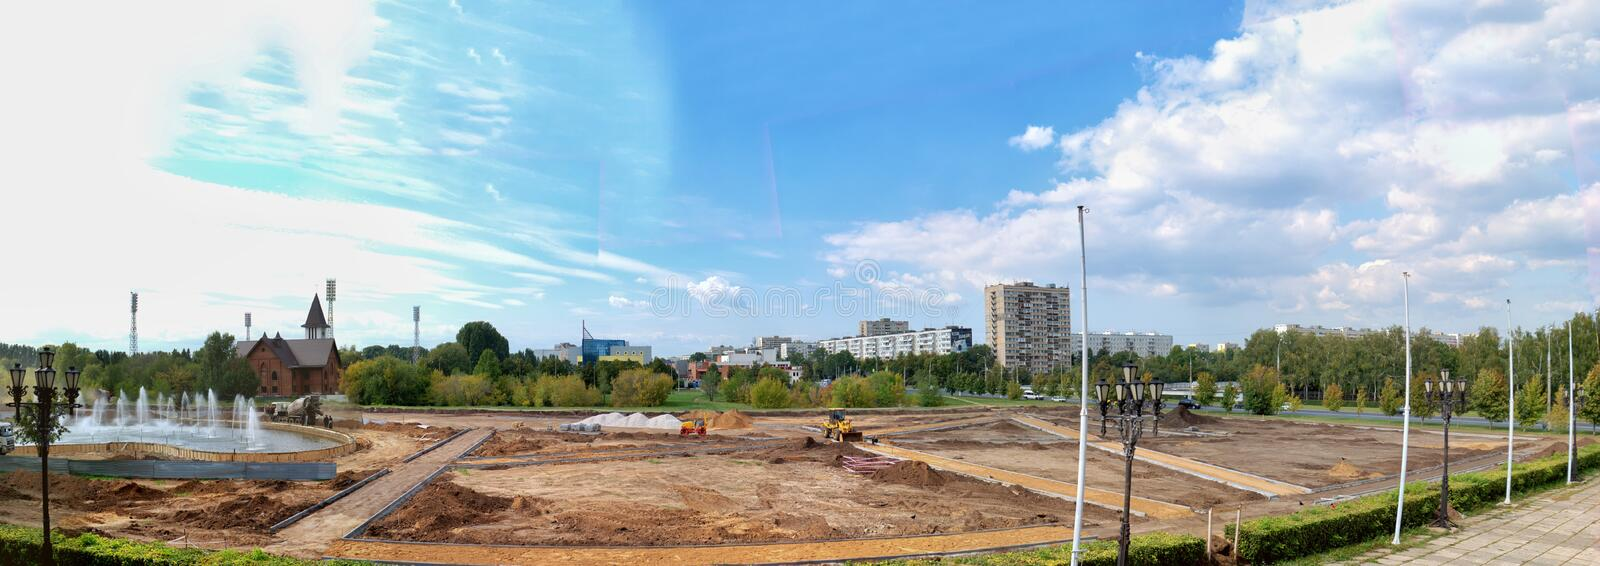 Repair of the fountain and the construction of a new square in the wasteland between the Catholic Church and the Sports Palace. royalty free stock photo